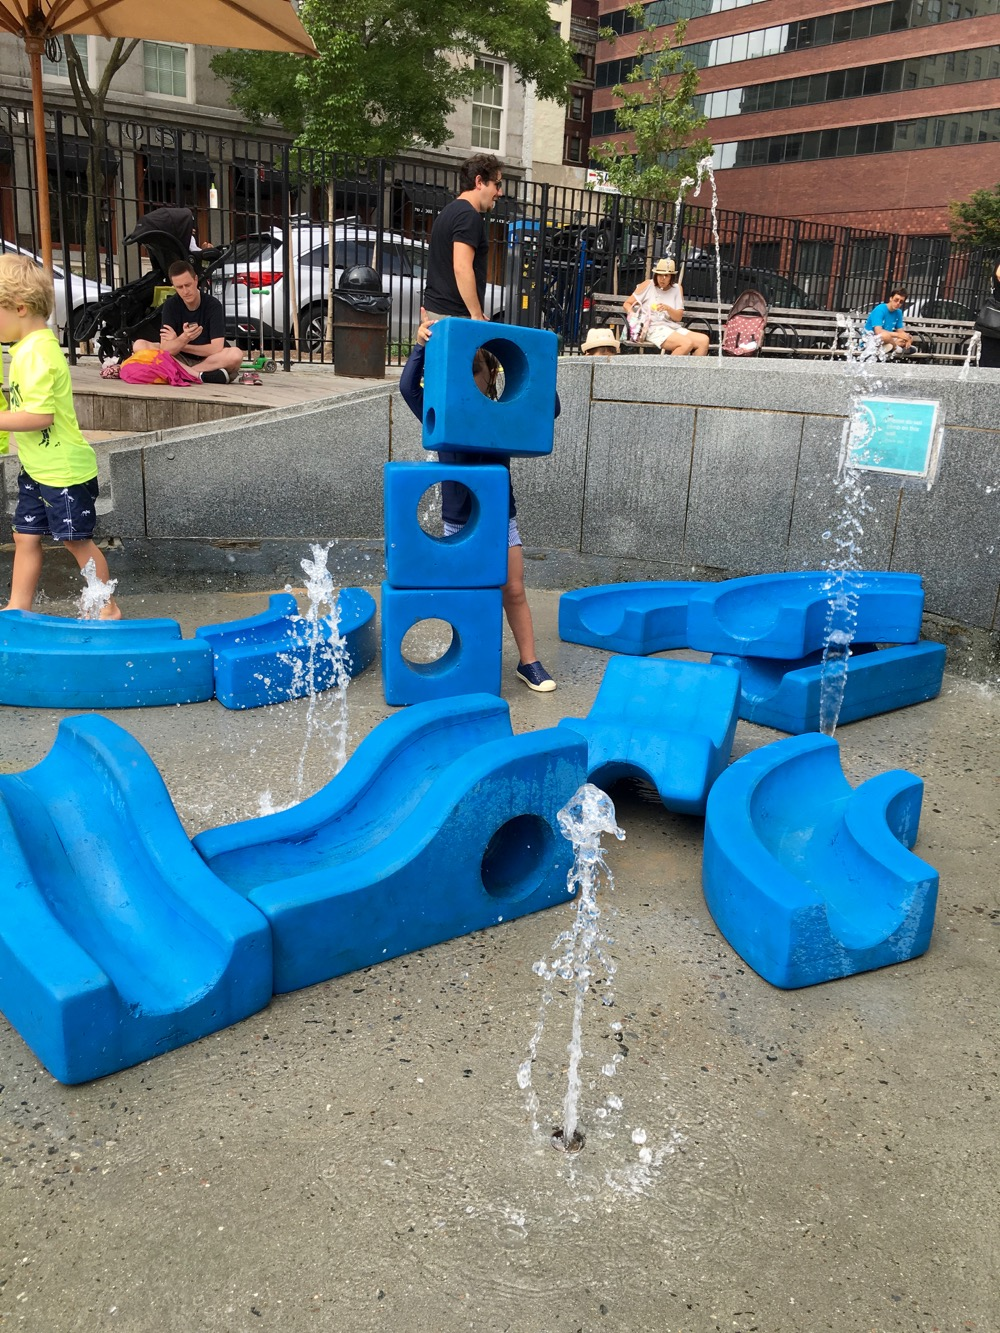 Imagination Playground 5 - Babyccino NYC Guide